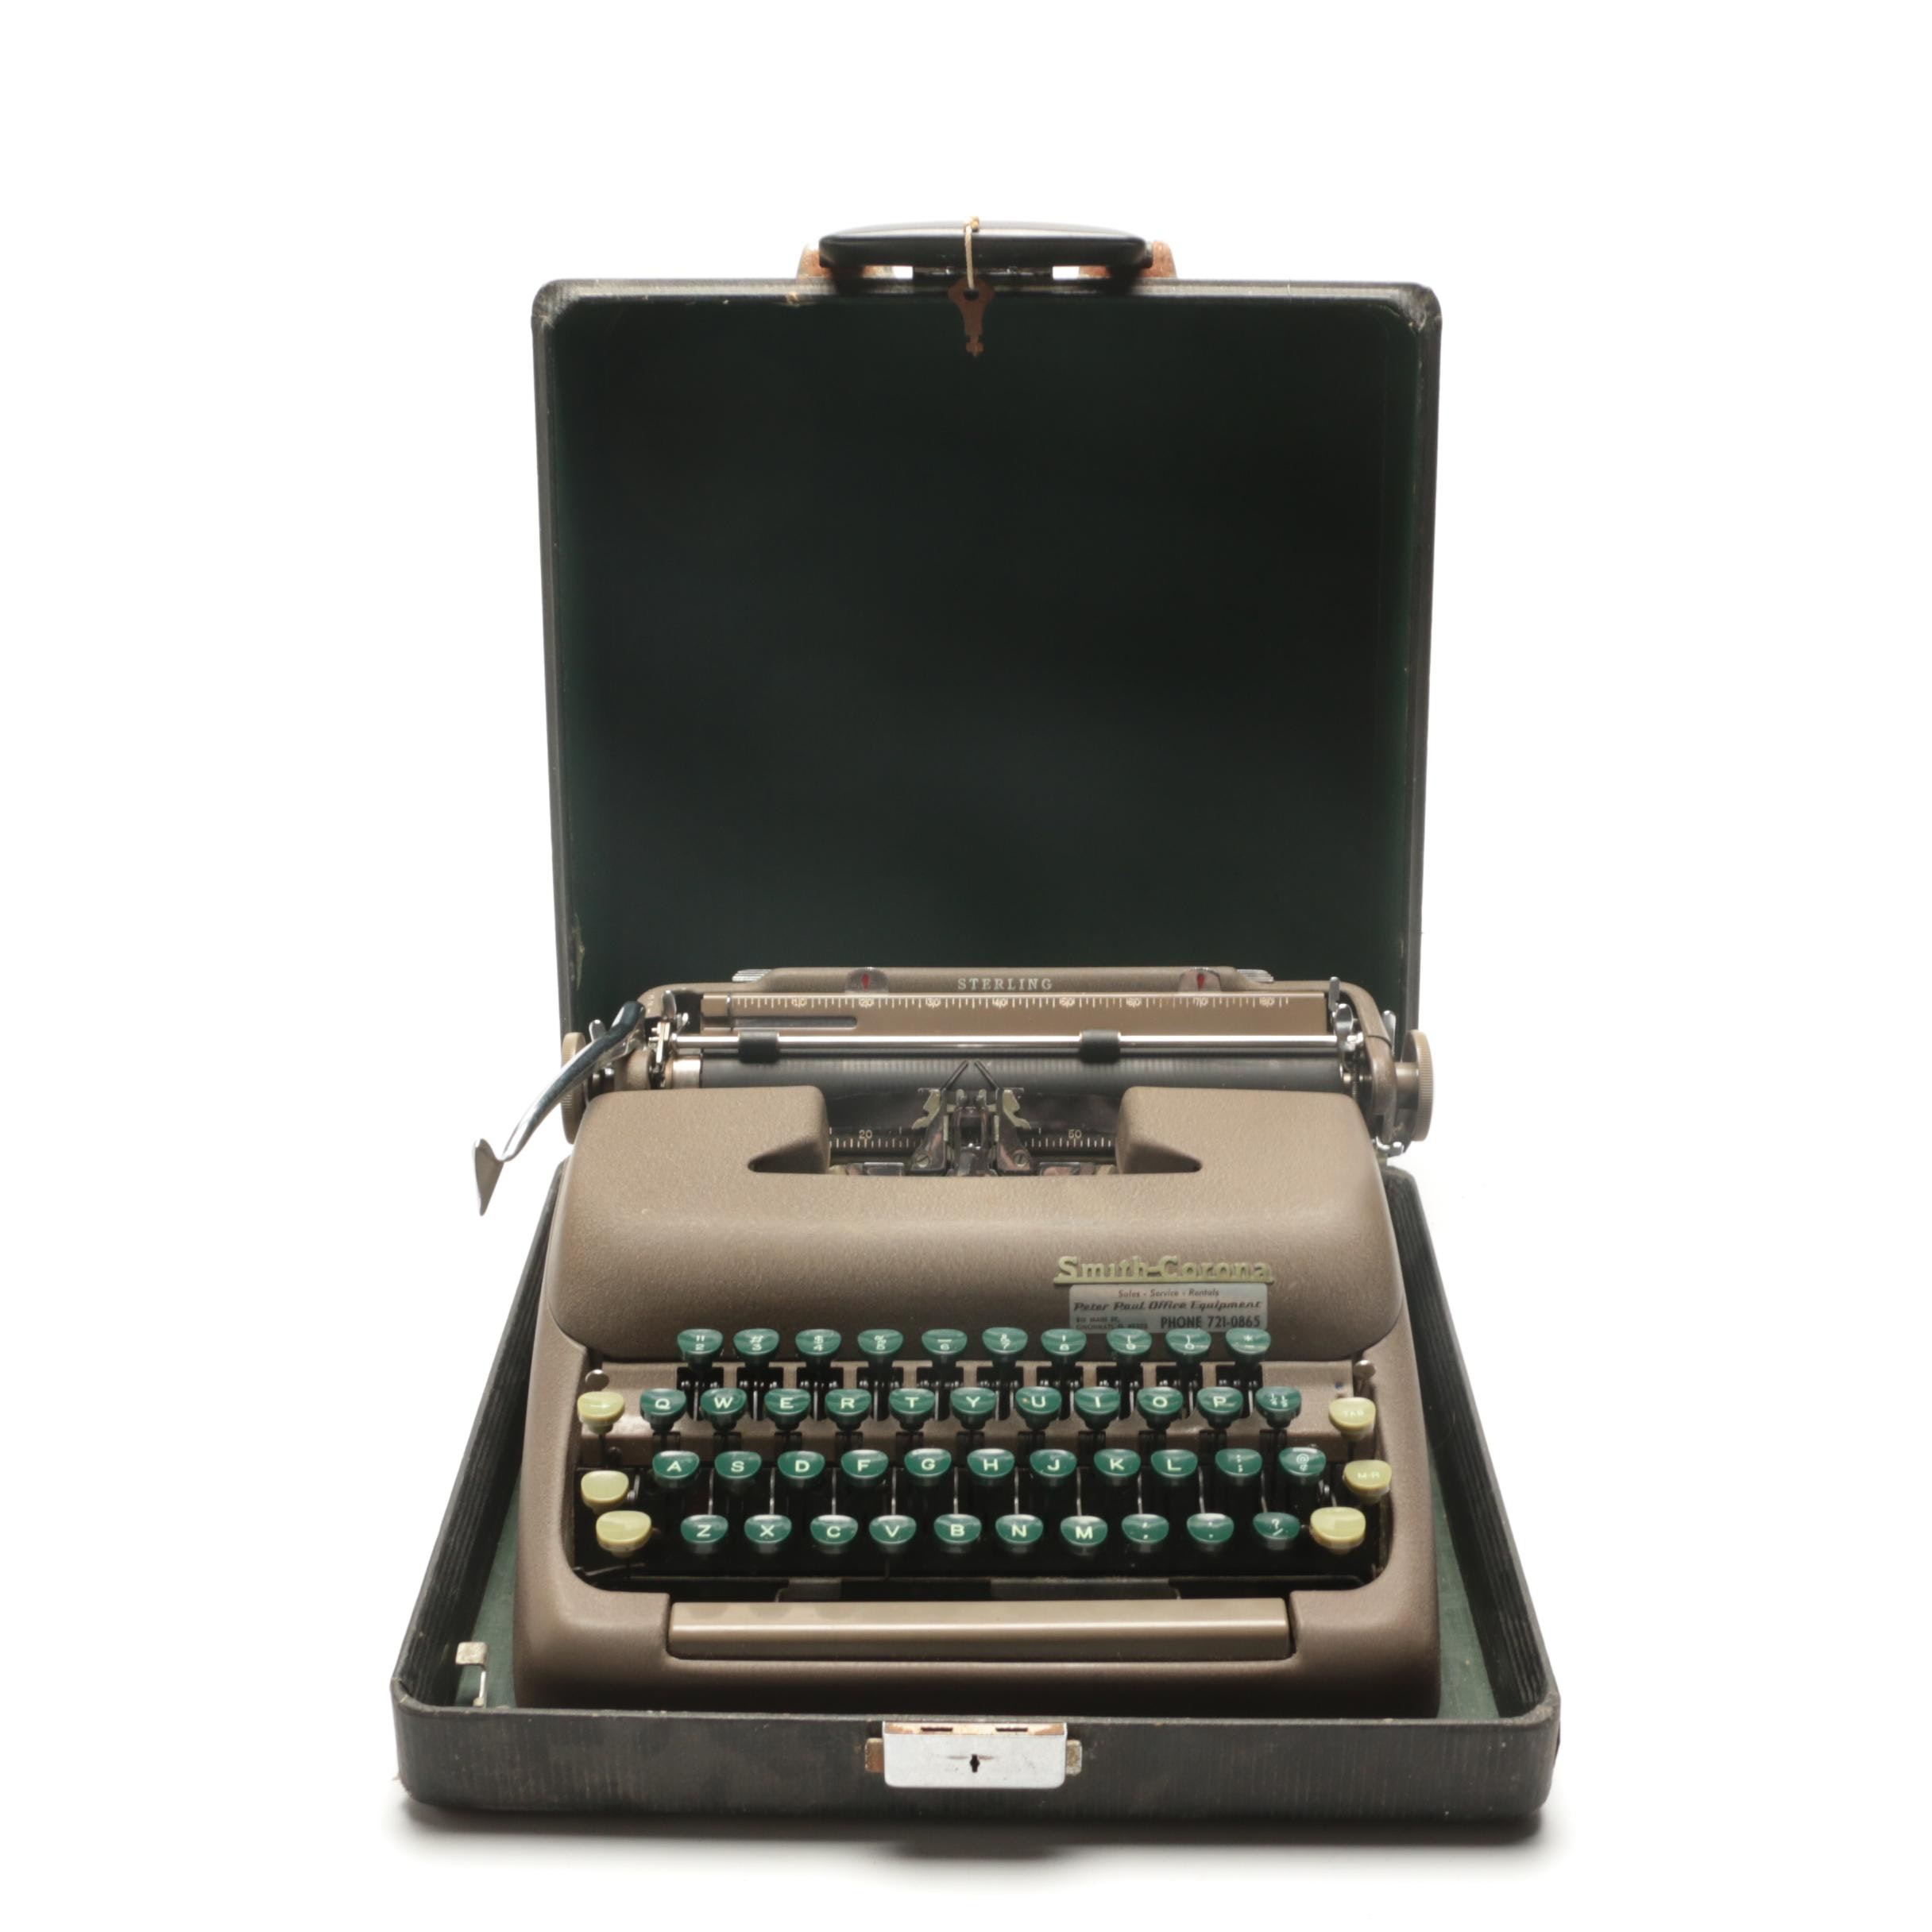 Smith-Corona Sterling Typewriter in Carrying Case